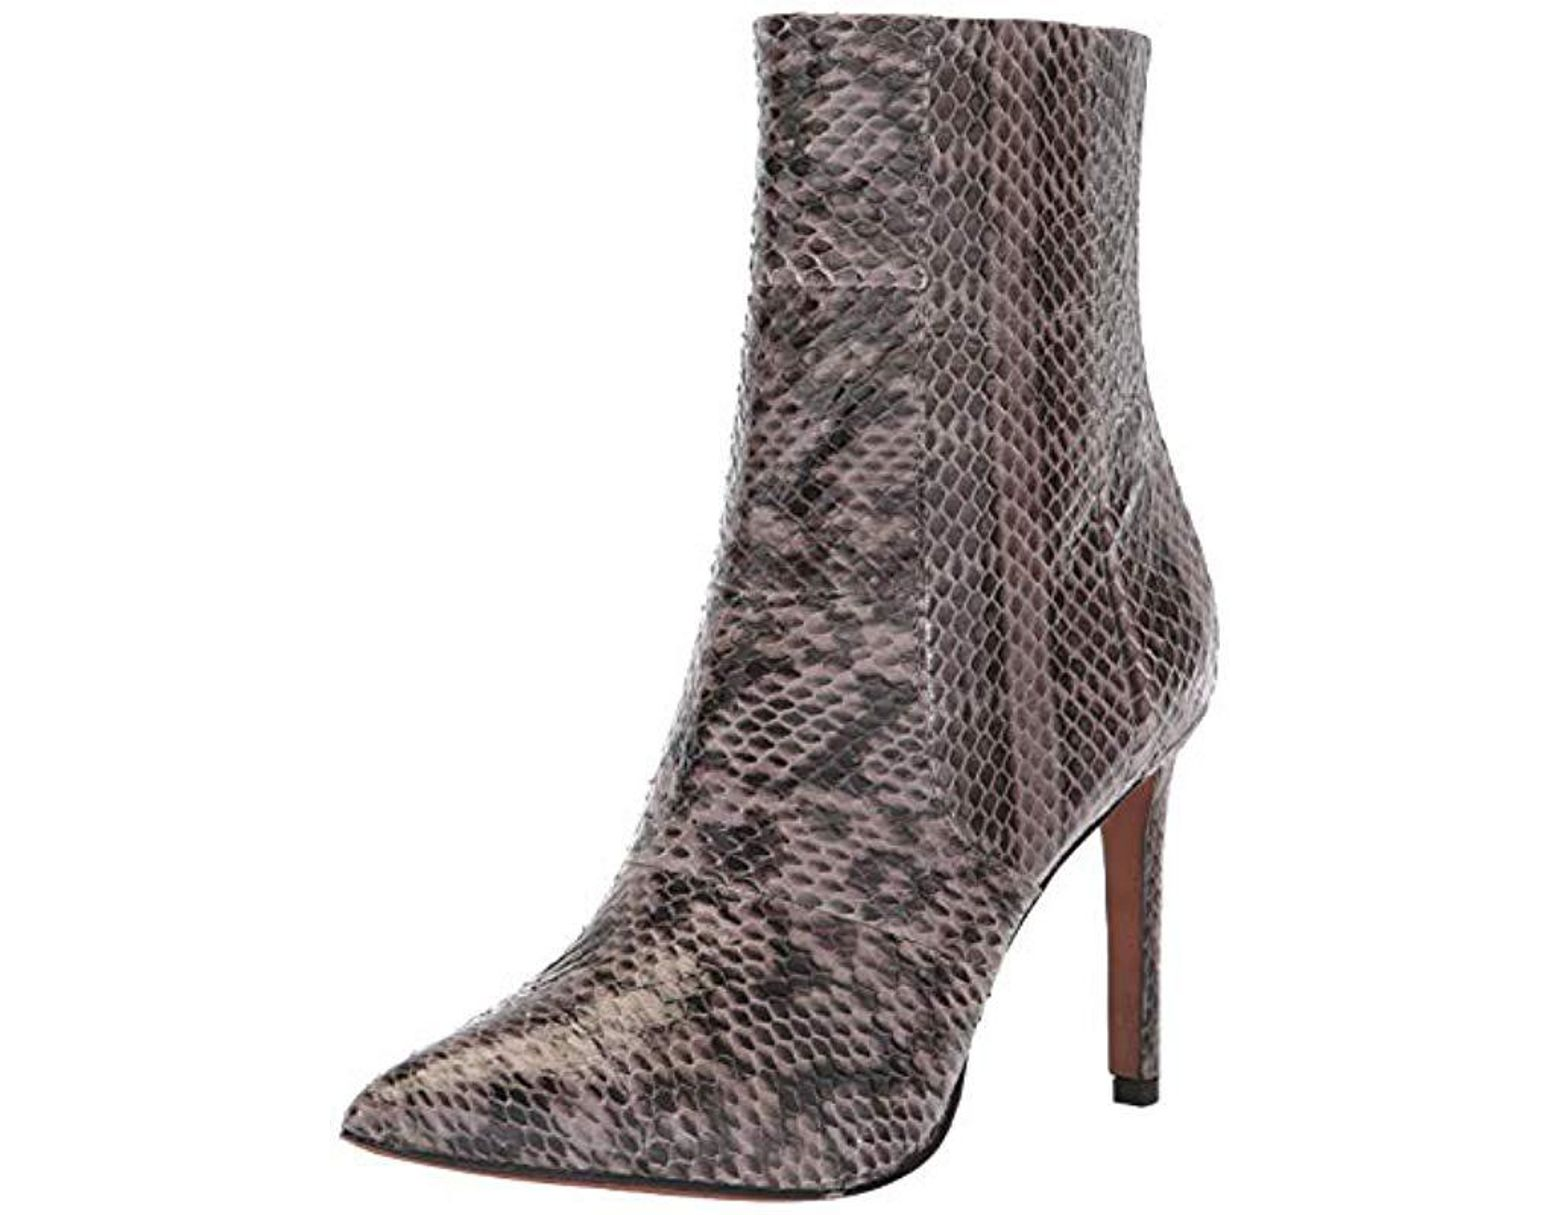 9a6df6526e7 Women's Gray Ava Bootie Ankle Boot